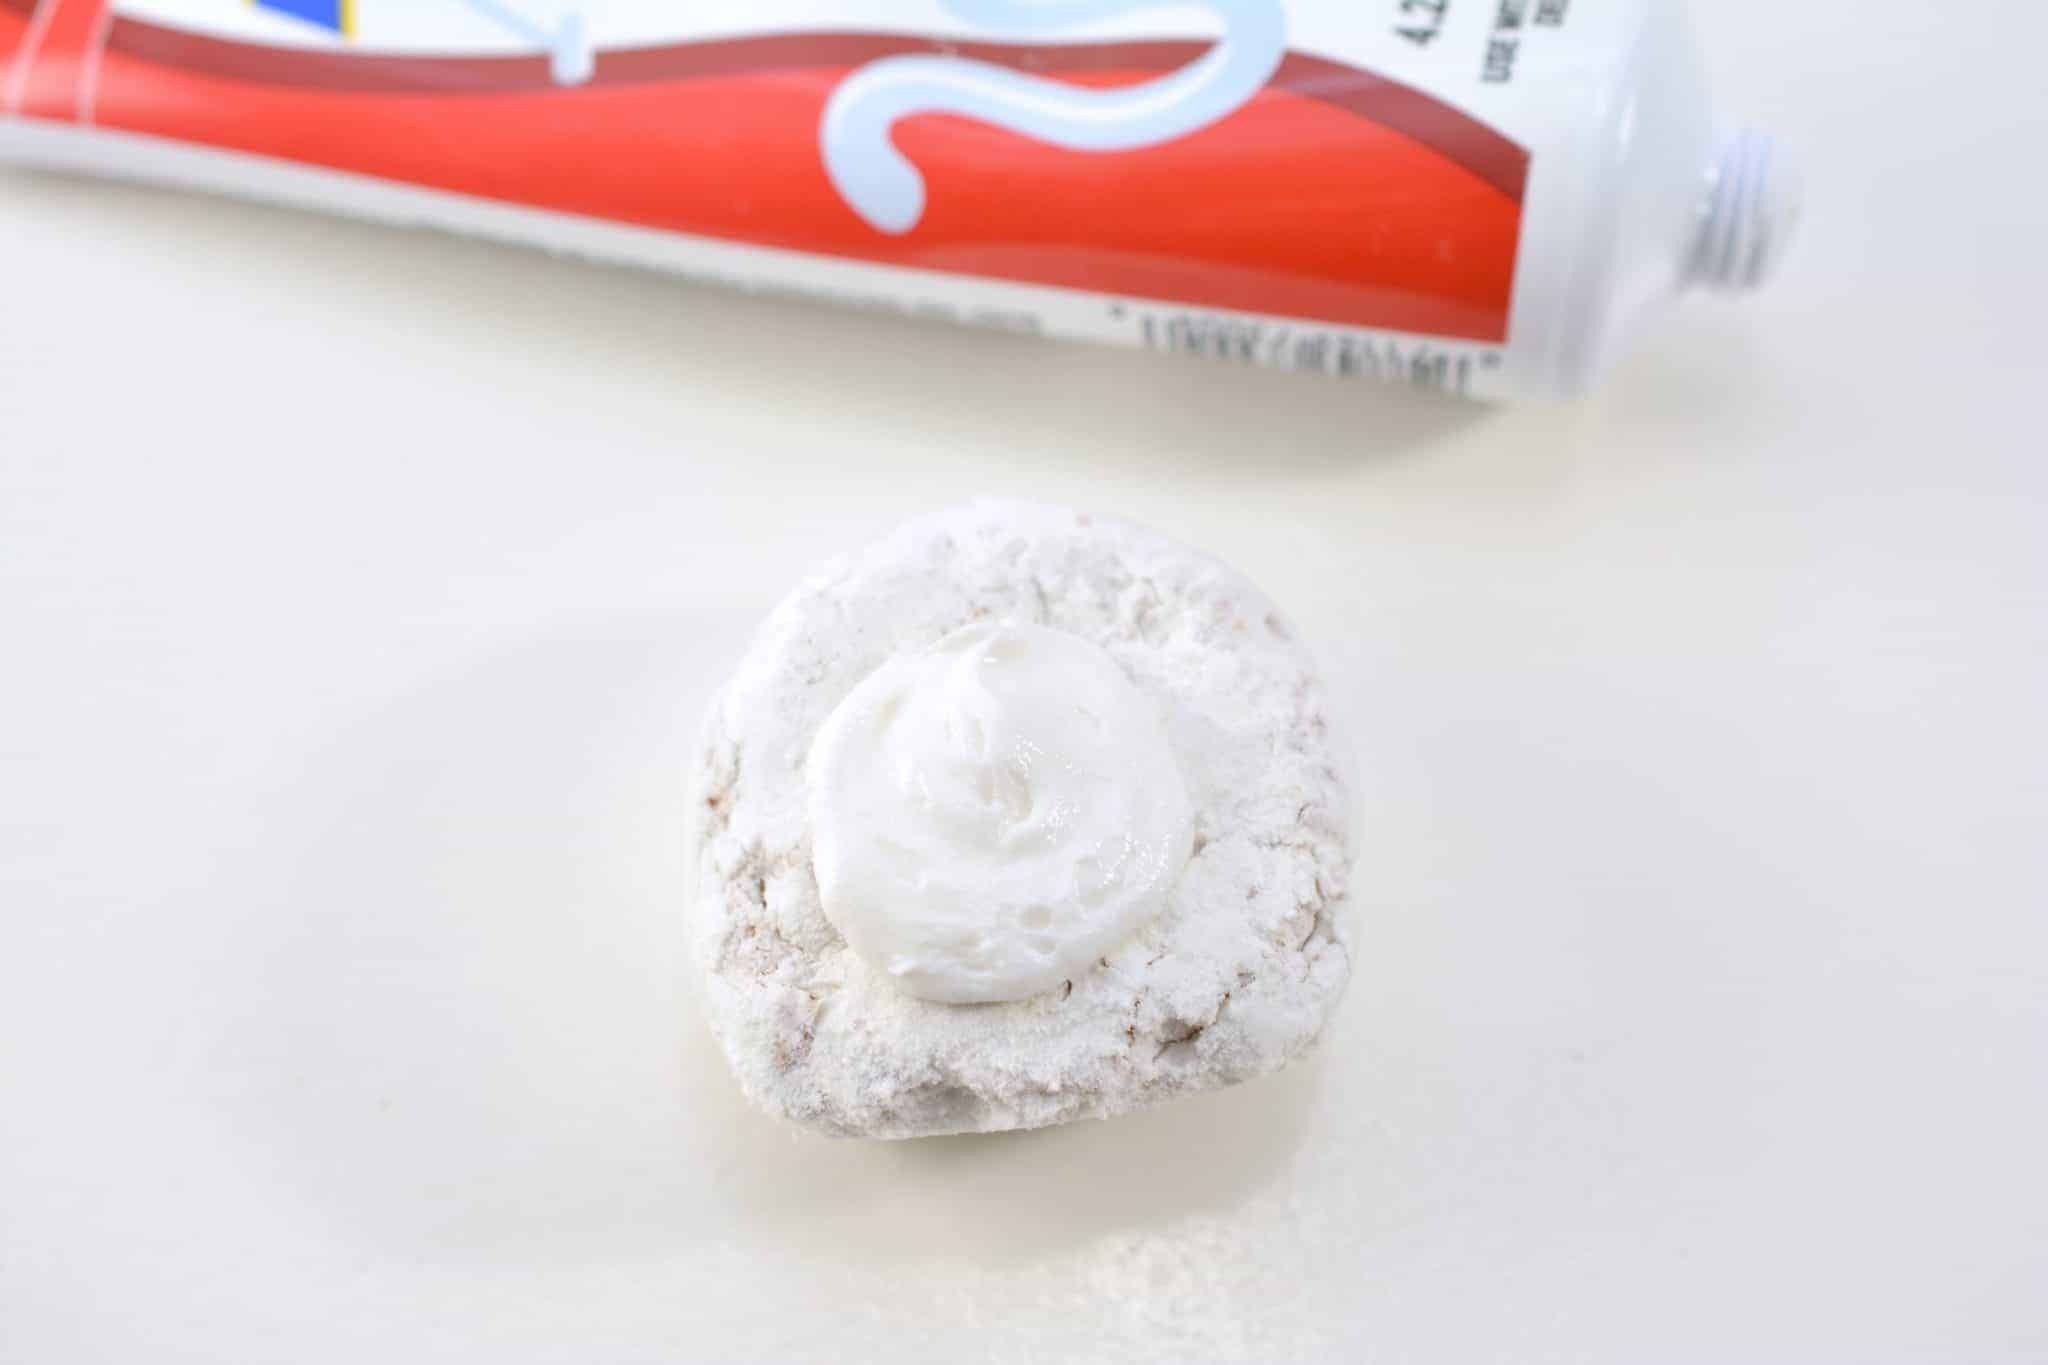 powdered donut with icing on it